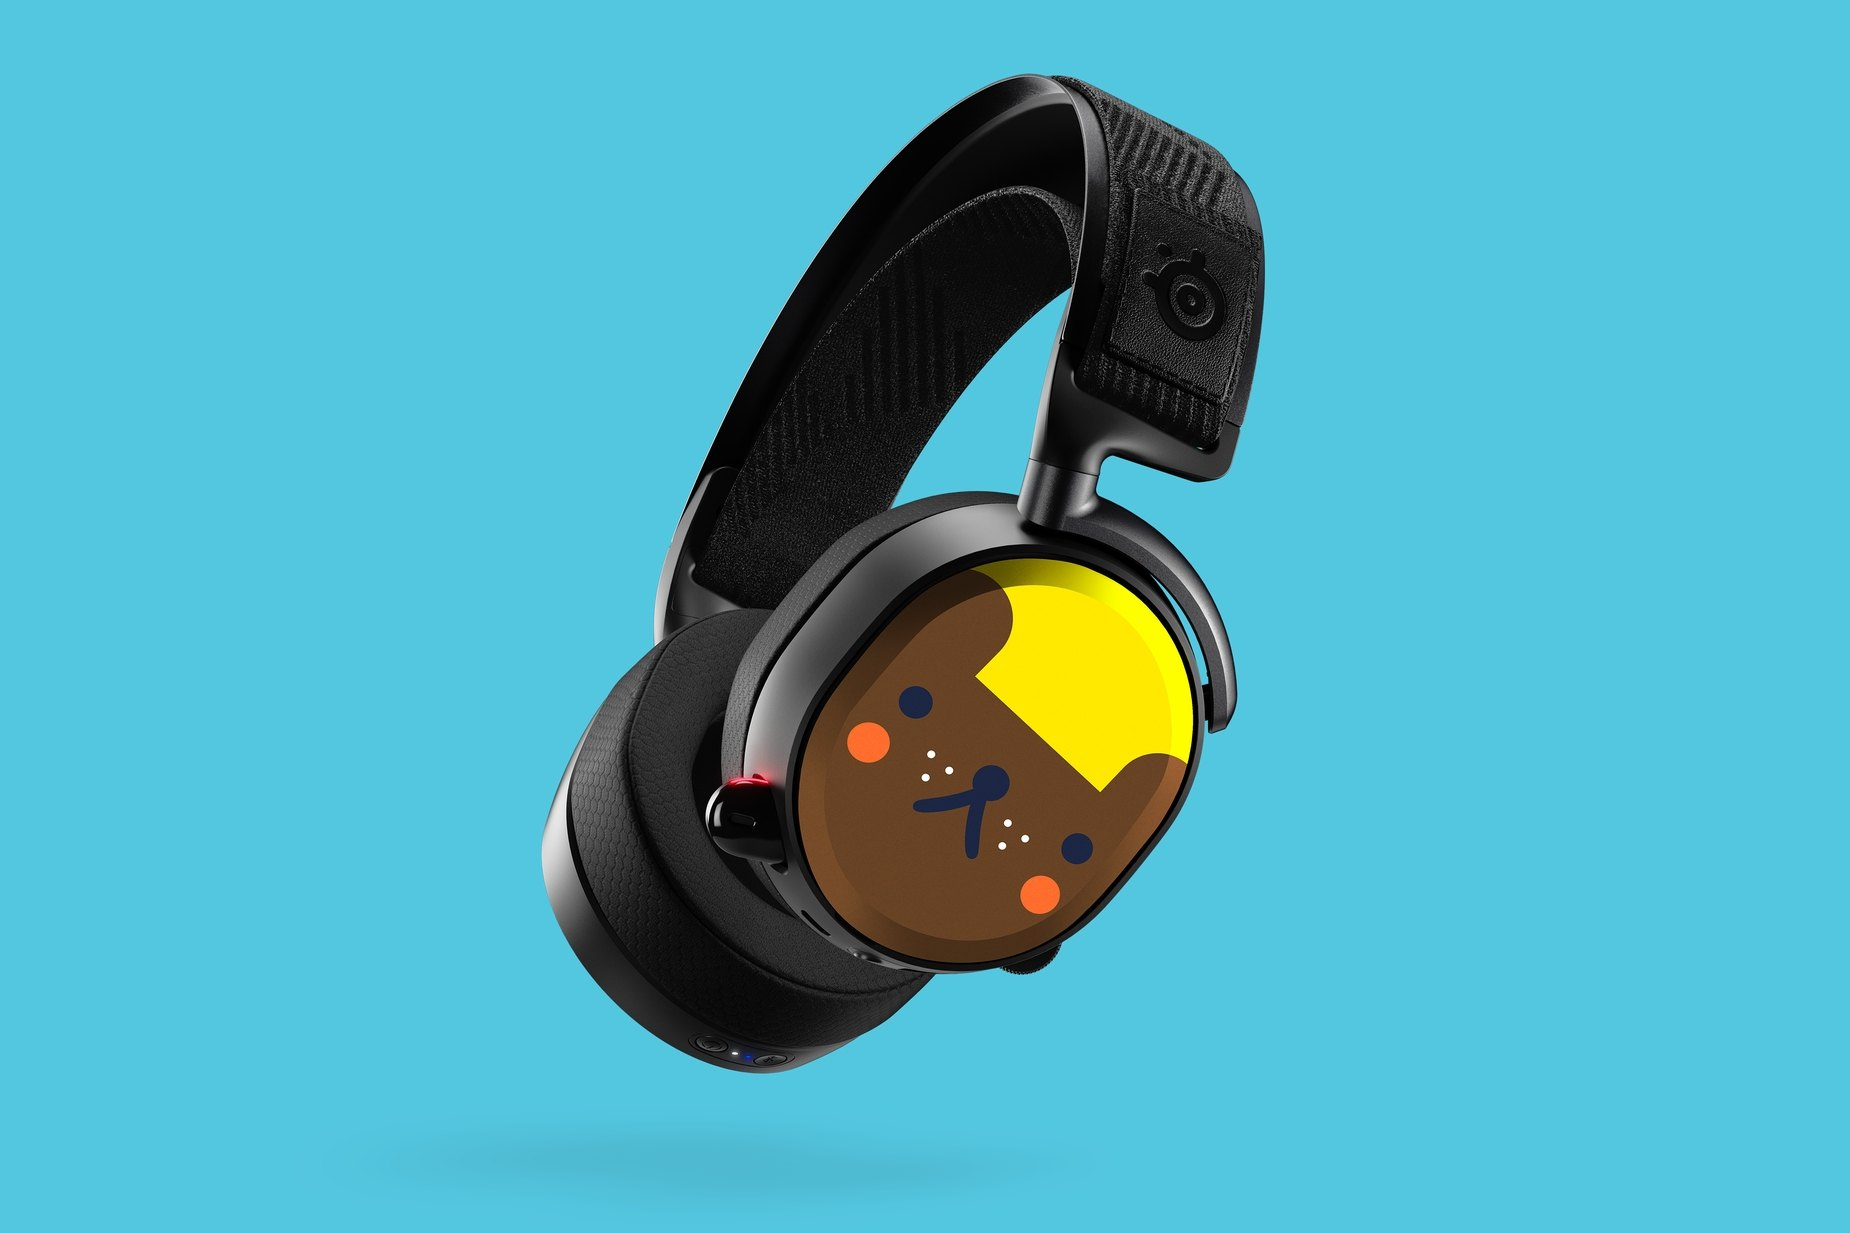 Full headset render with Michelle Romo graphics on the speaker plates